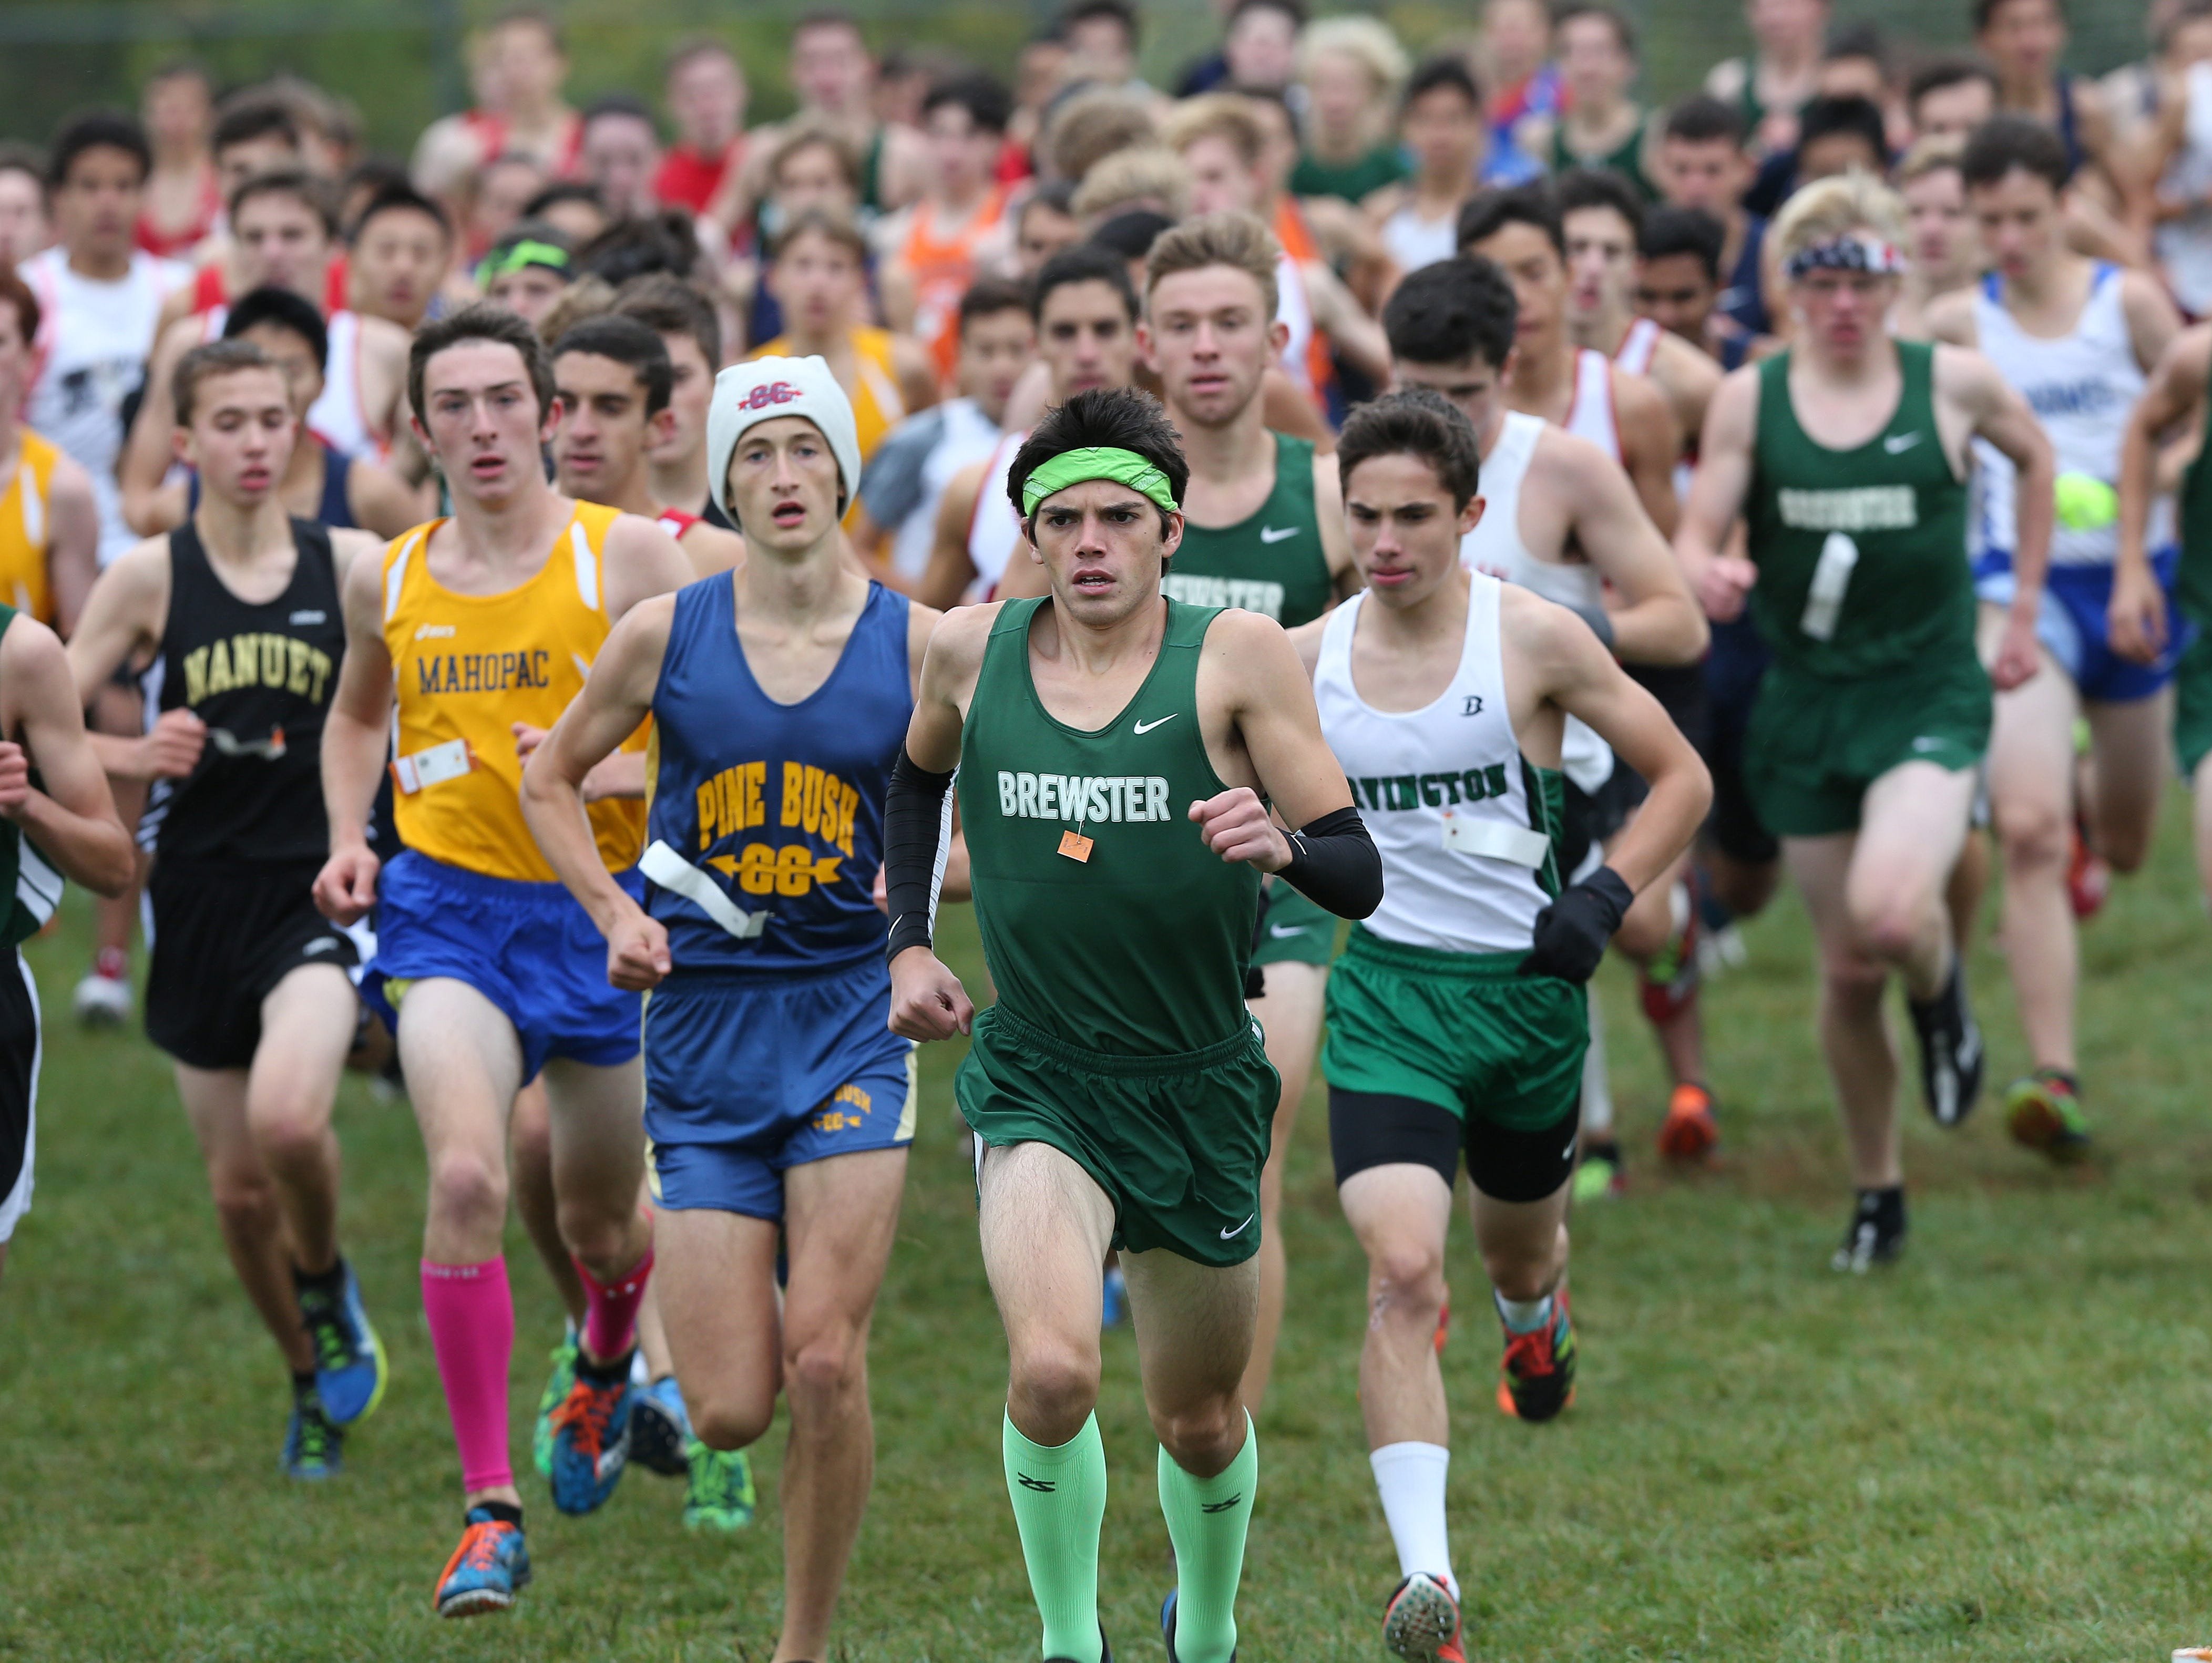 Brewster's Kevin Hazelwood leads the pack at the start of the boys D 2 variety race during the 38th annual Brewster Bear Classic Cross Country Invitational at Brewster High School Oct. 3, 2015. Hazelwood won the race.